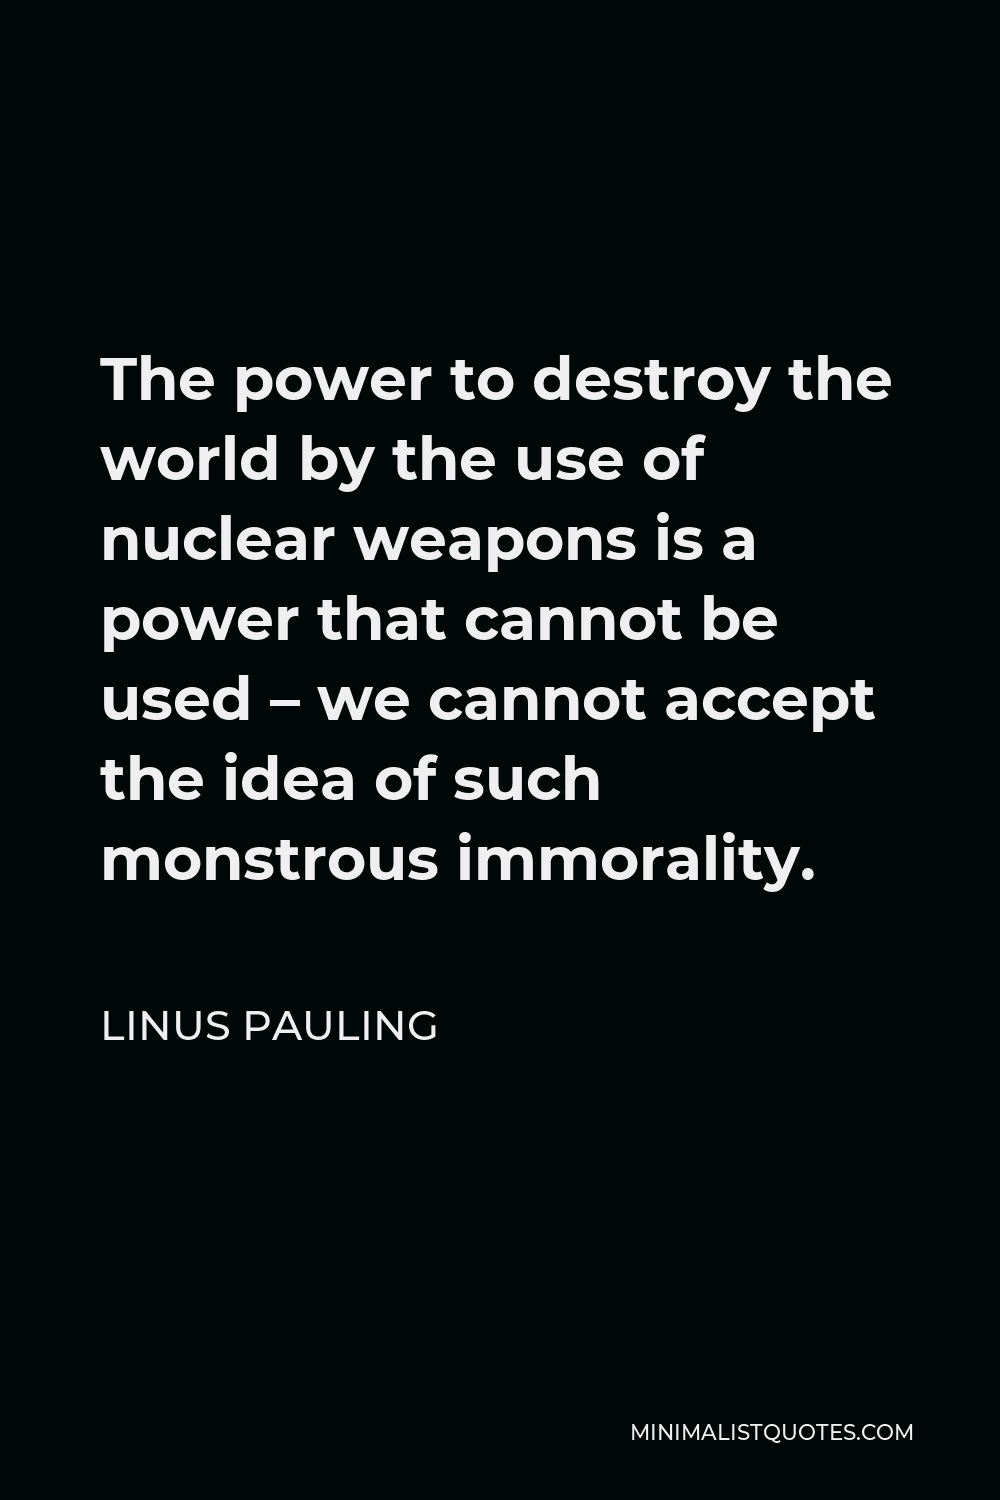 Linus Pauling Quote - The power to destroy the world by the use of nuclear weapons is a power that cannot be used – we cannot accept the idea of such monstrous immorality.